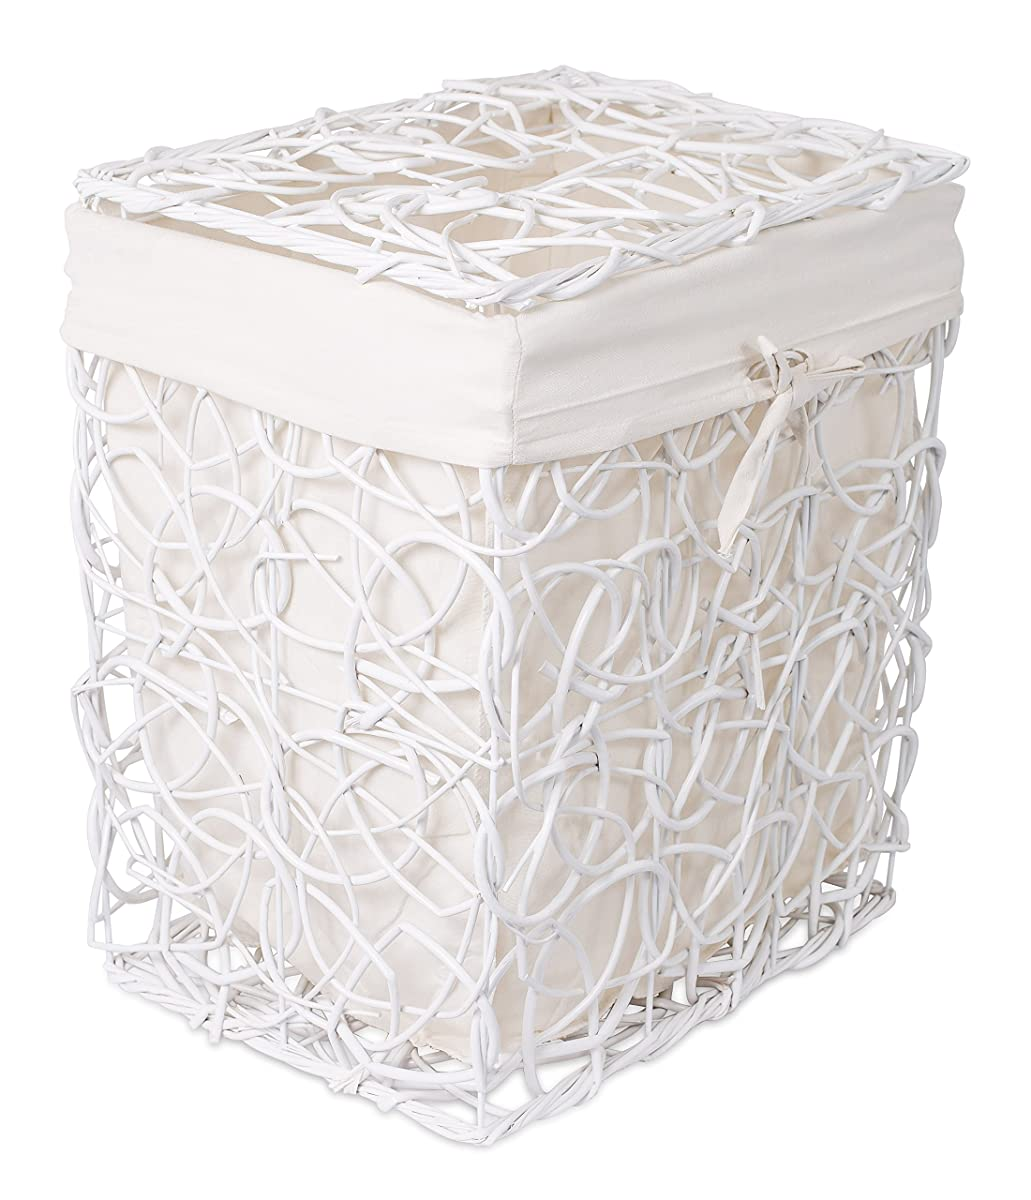 Birdrock Home Decorative Willow Laundry Hamper With Liner